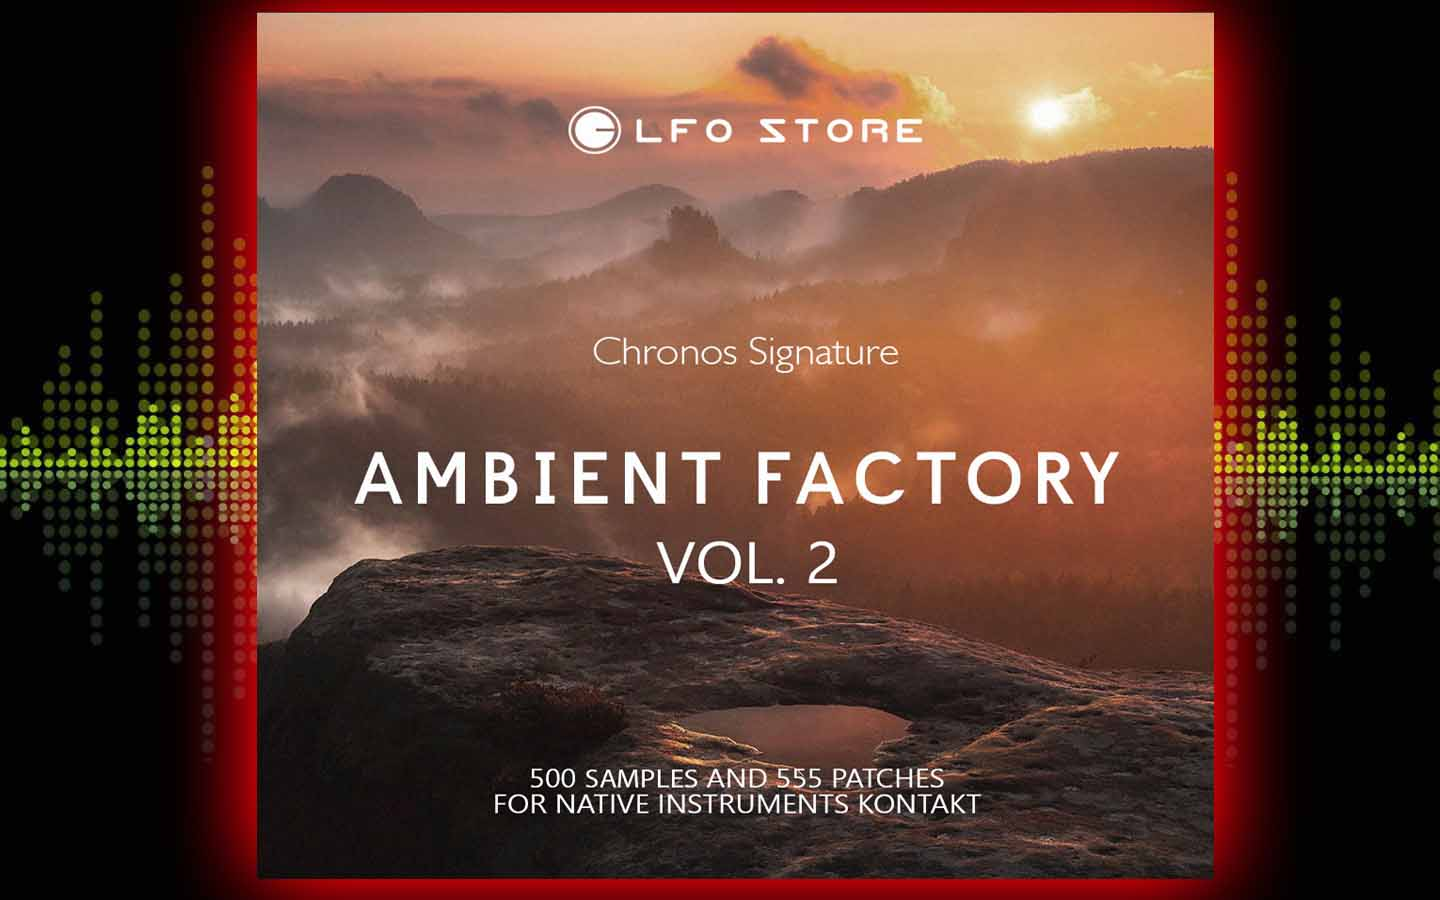 Ambient Factory